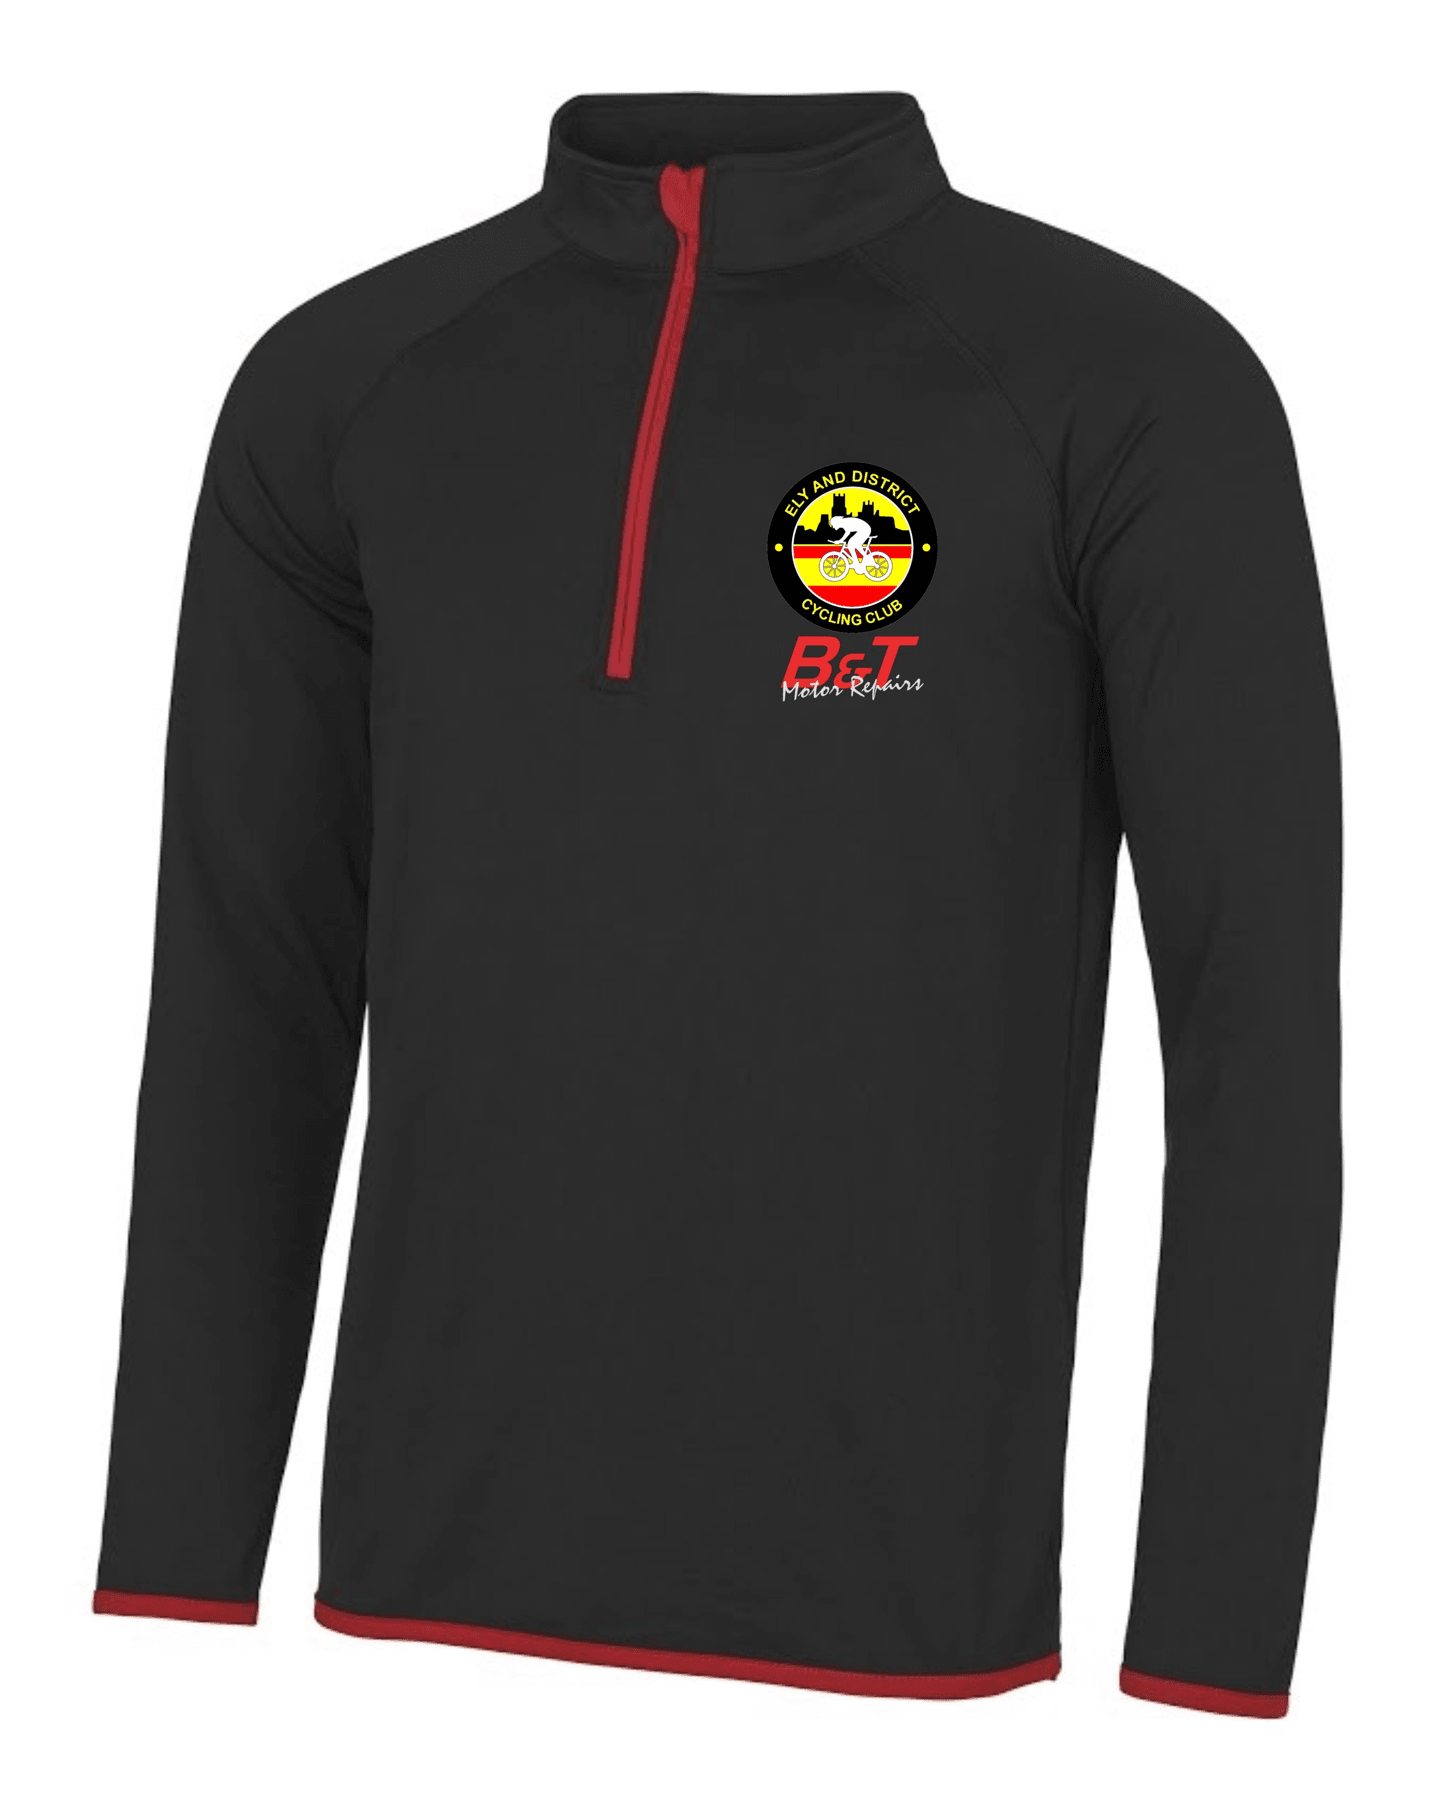 EDCC – Cool 1/2 Zip Sweatshirt in Black/Red